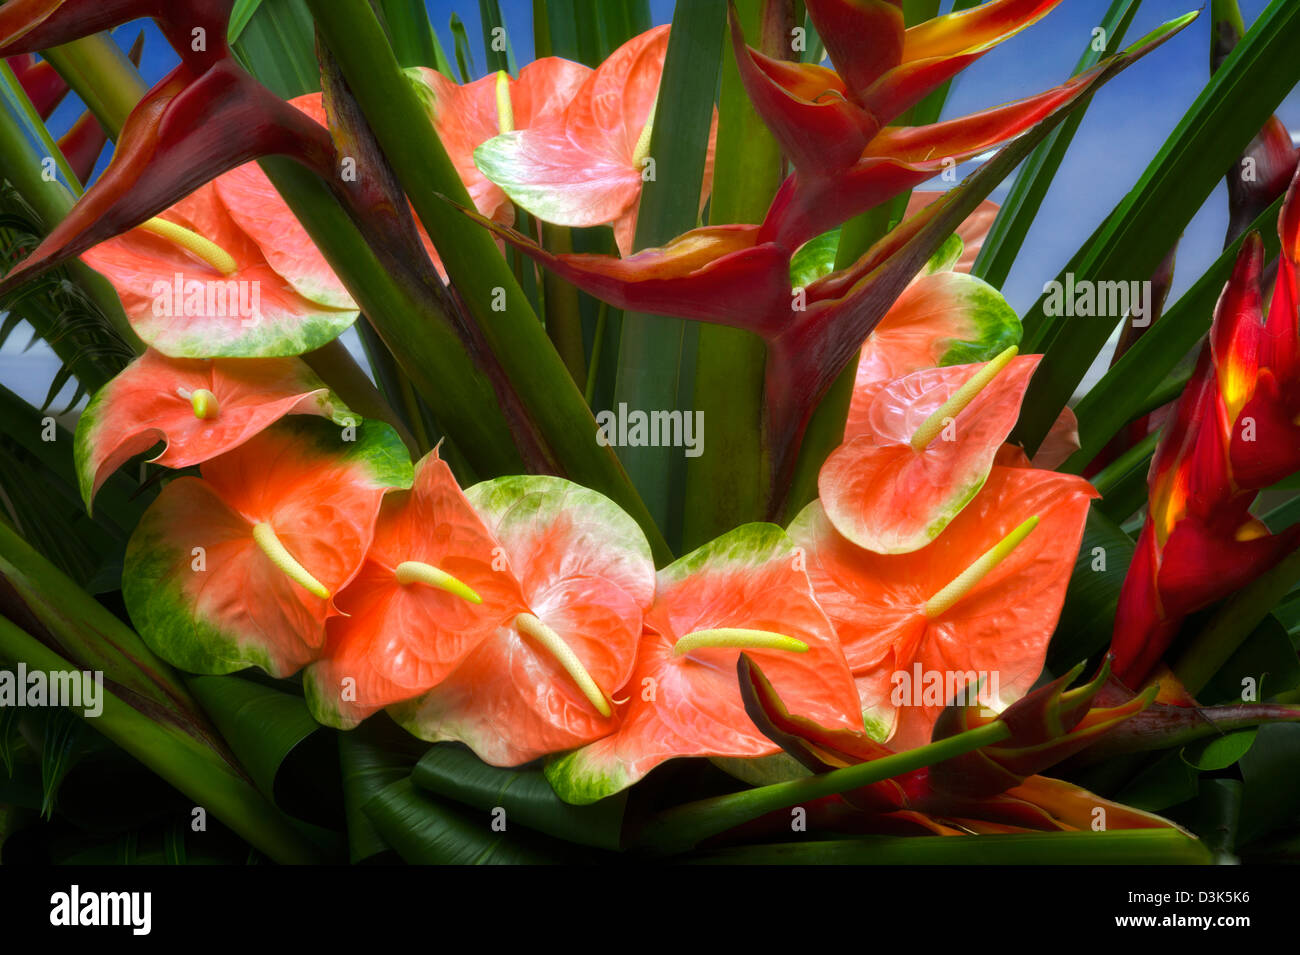 Tropical flower display with Anthurium. - Stock Image